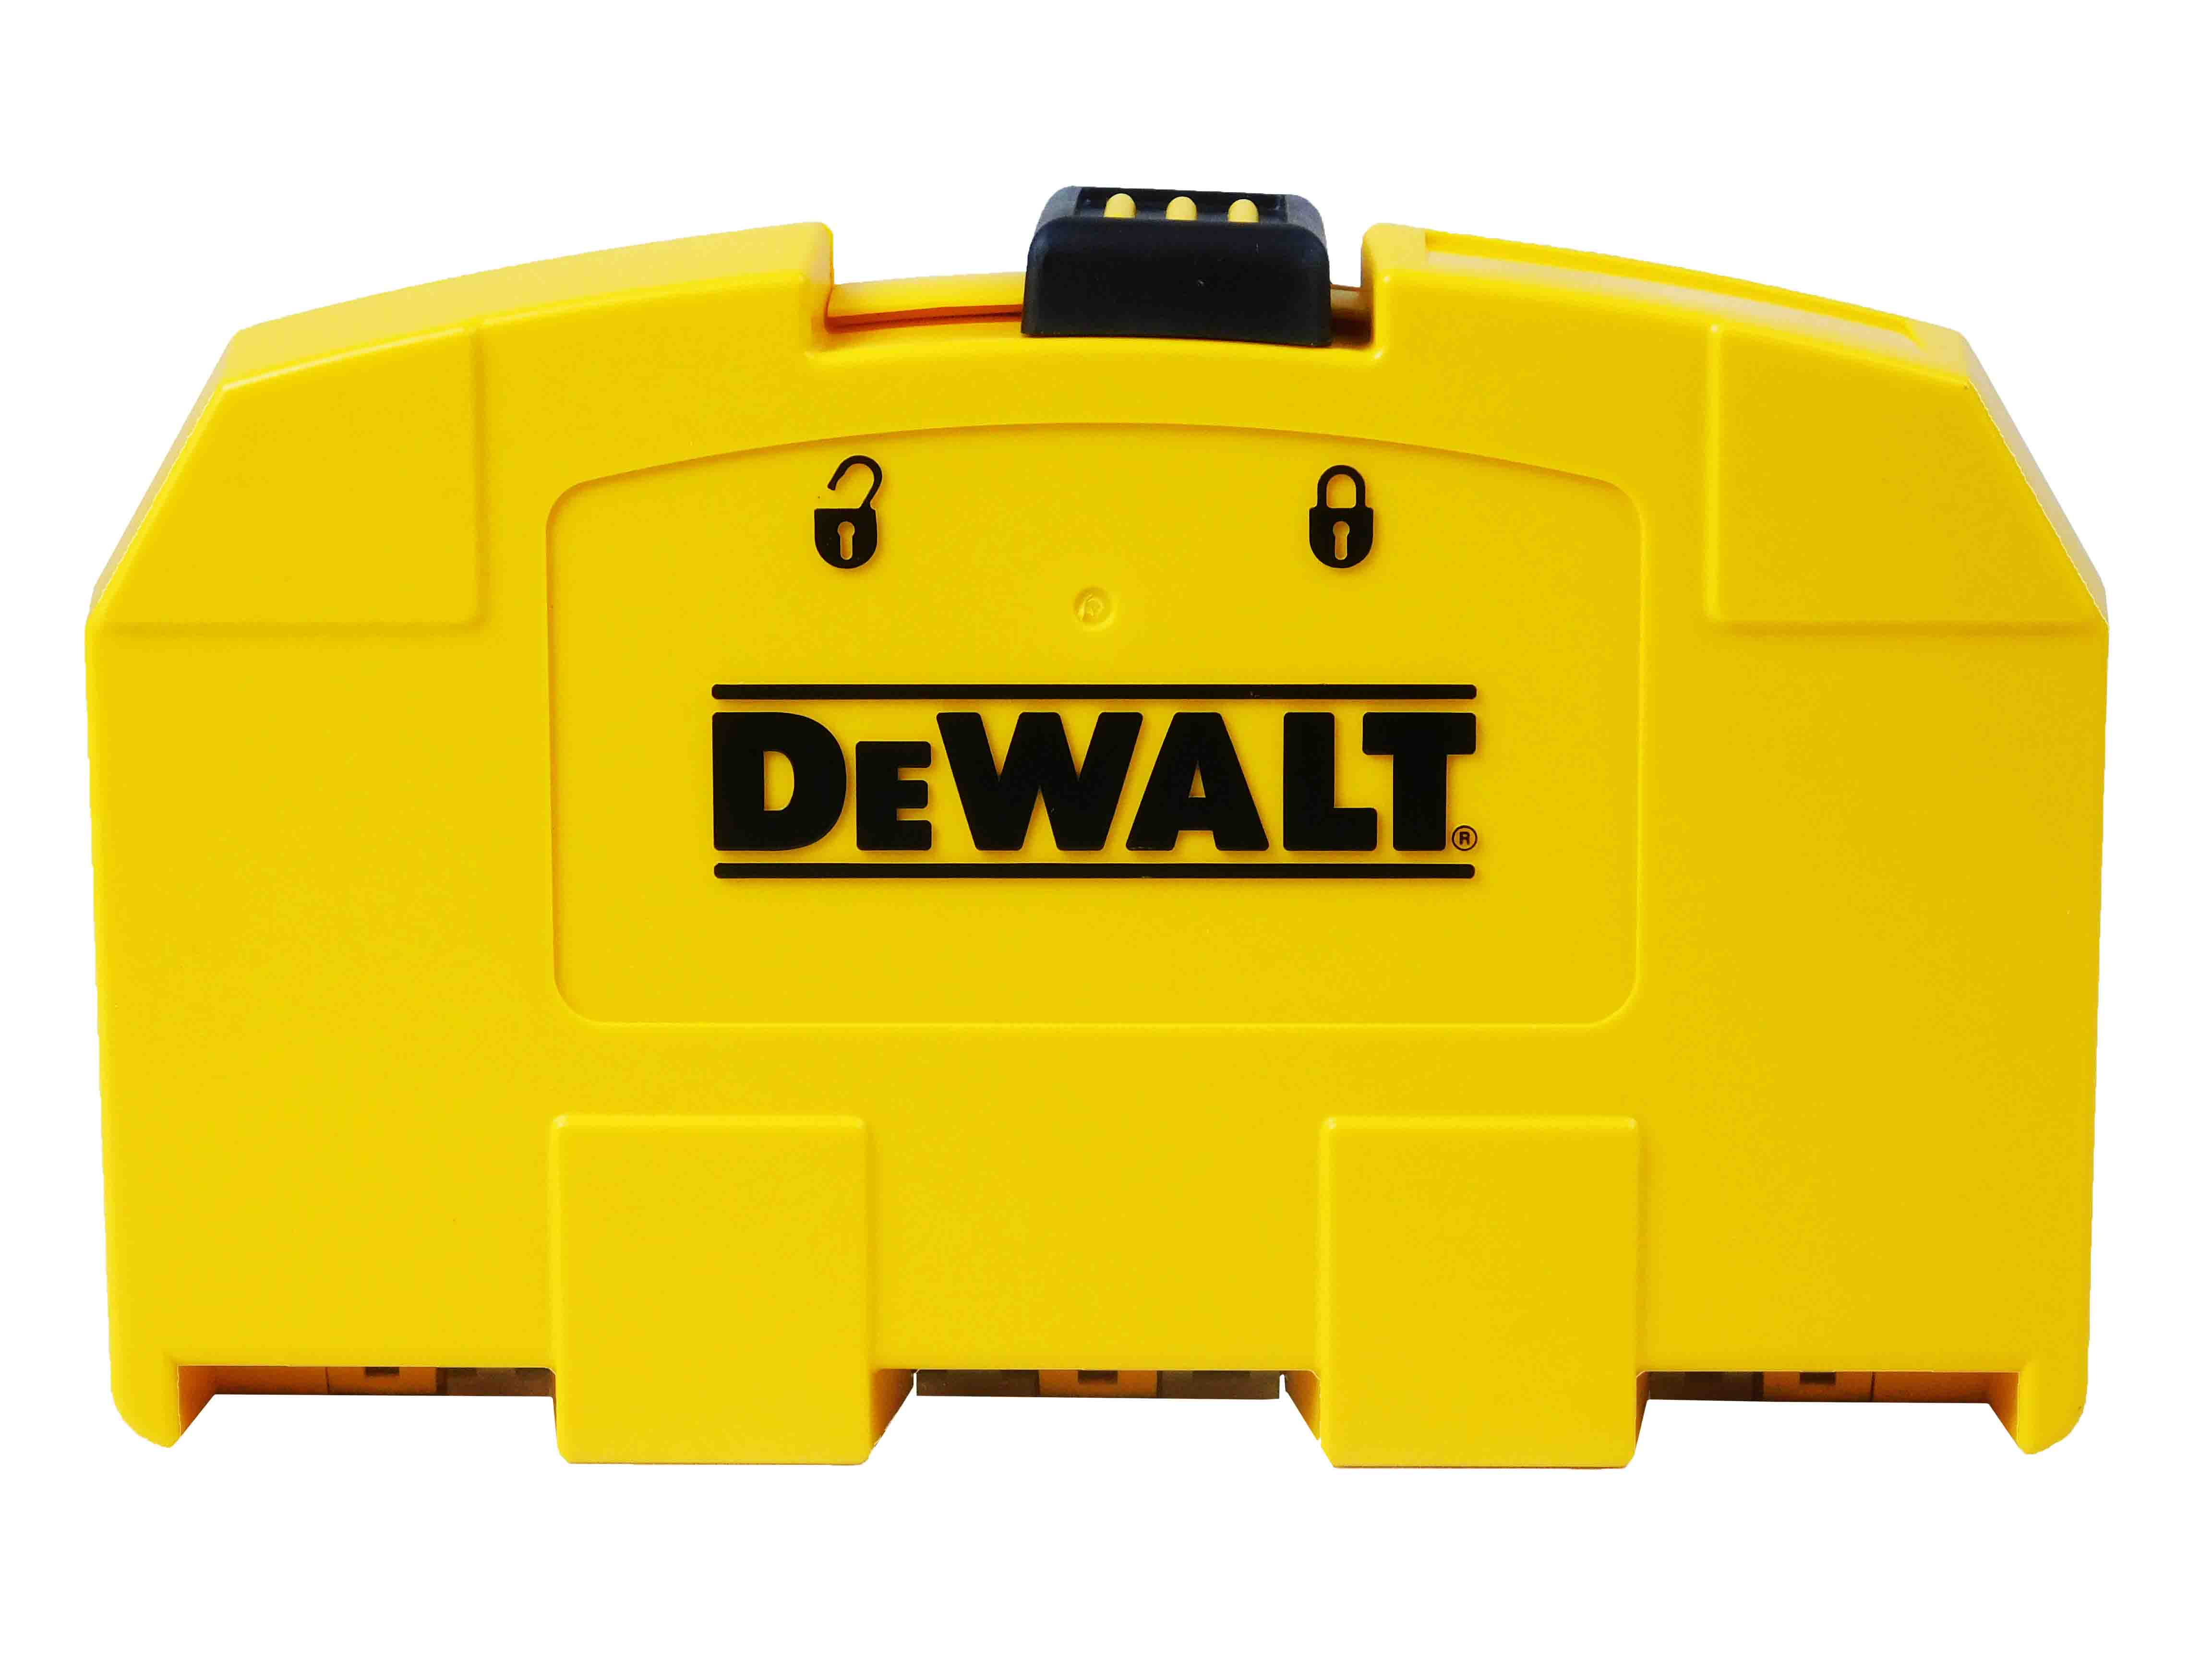 Dewalt-DCS381B-20VReciprocating-Saw-DW4890-15Pc-Reciprocating-Blades-image-4